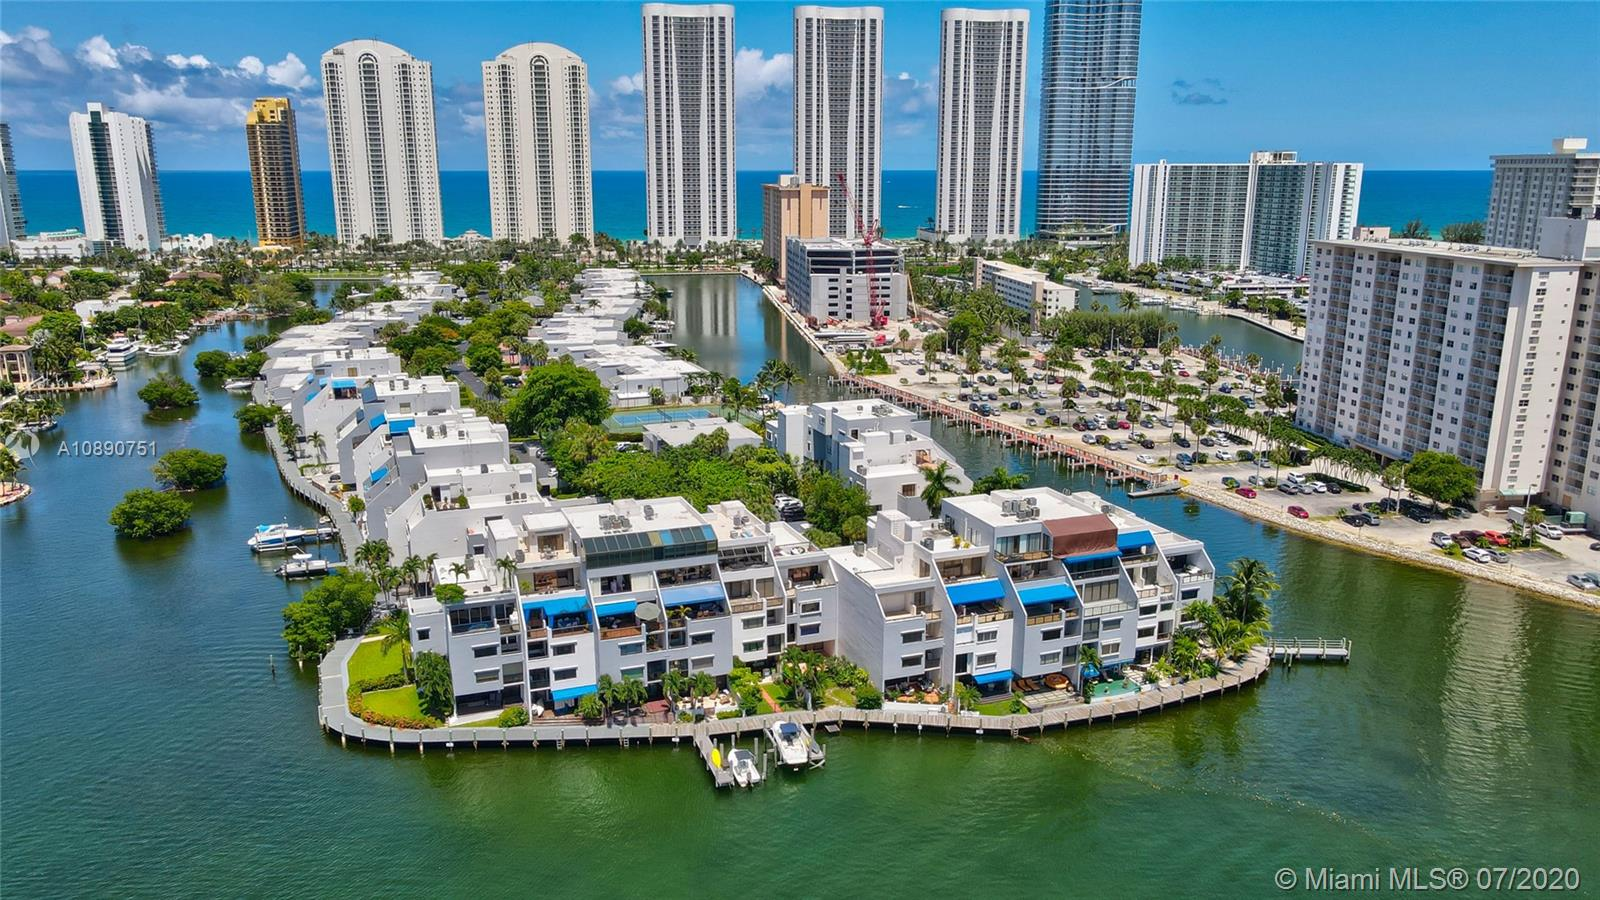 Photo of 425 Poinciana Island Drive #1444, Sunny Isles Beach, Florida, 33160 - Aerial view of complex, PH unit is top unit above the closest boat dock